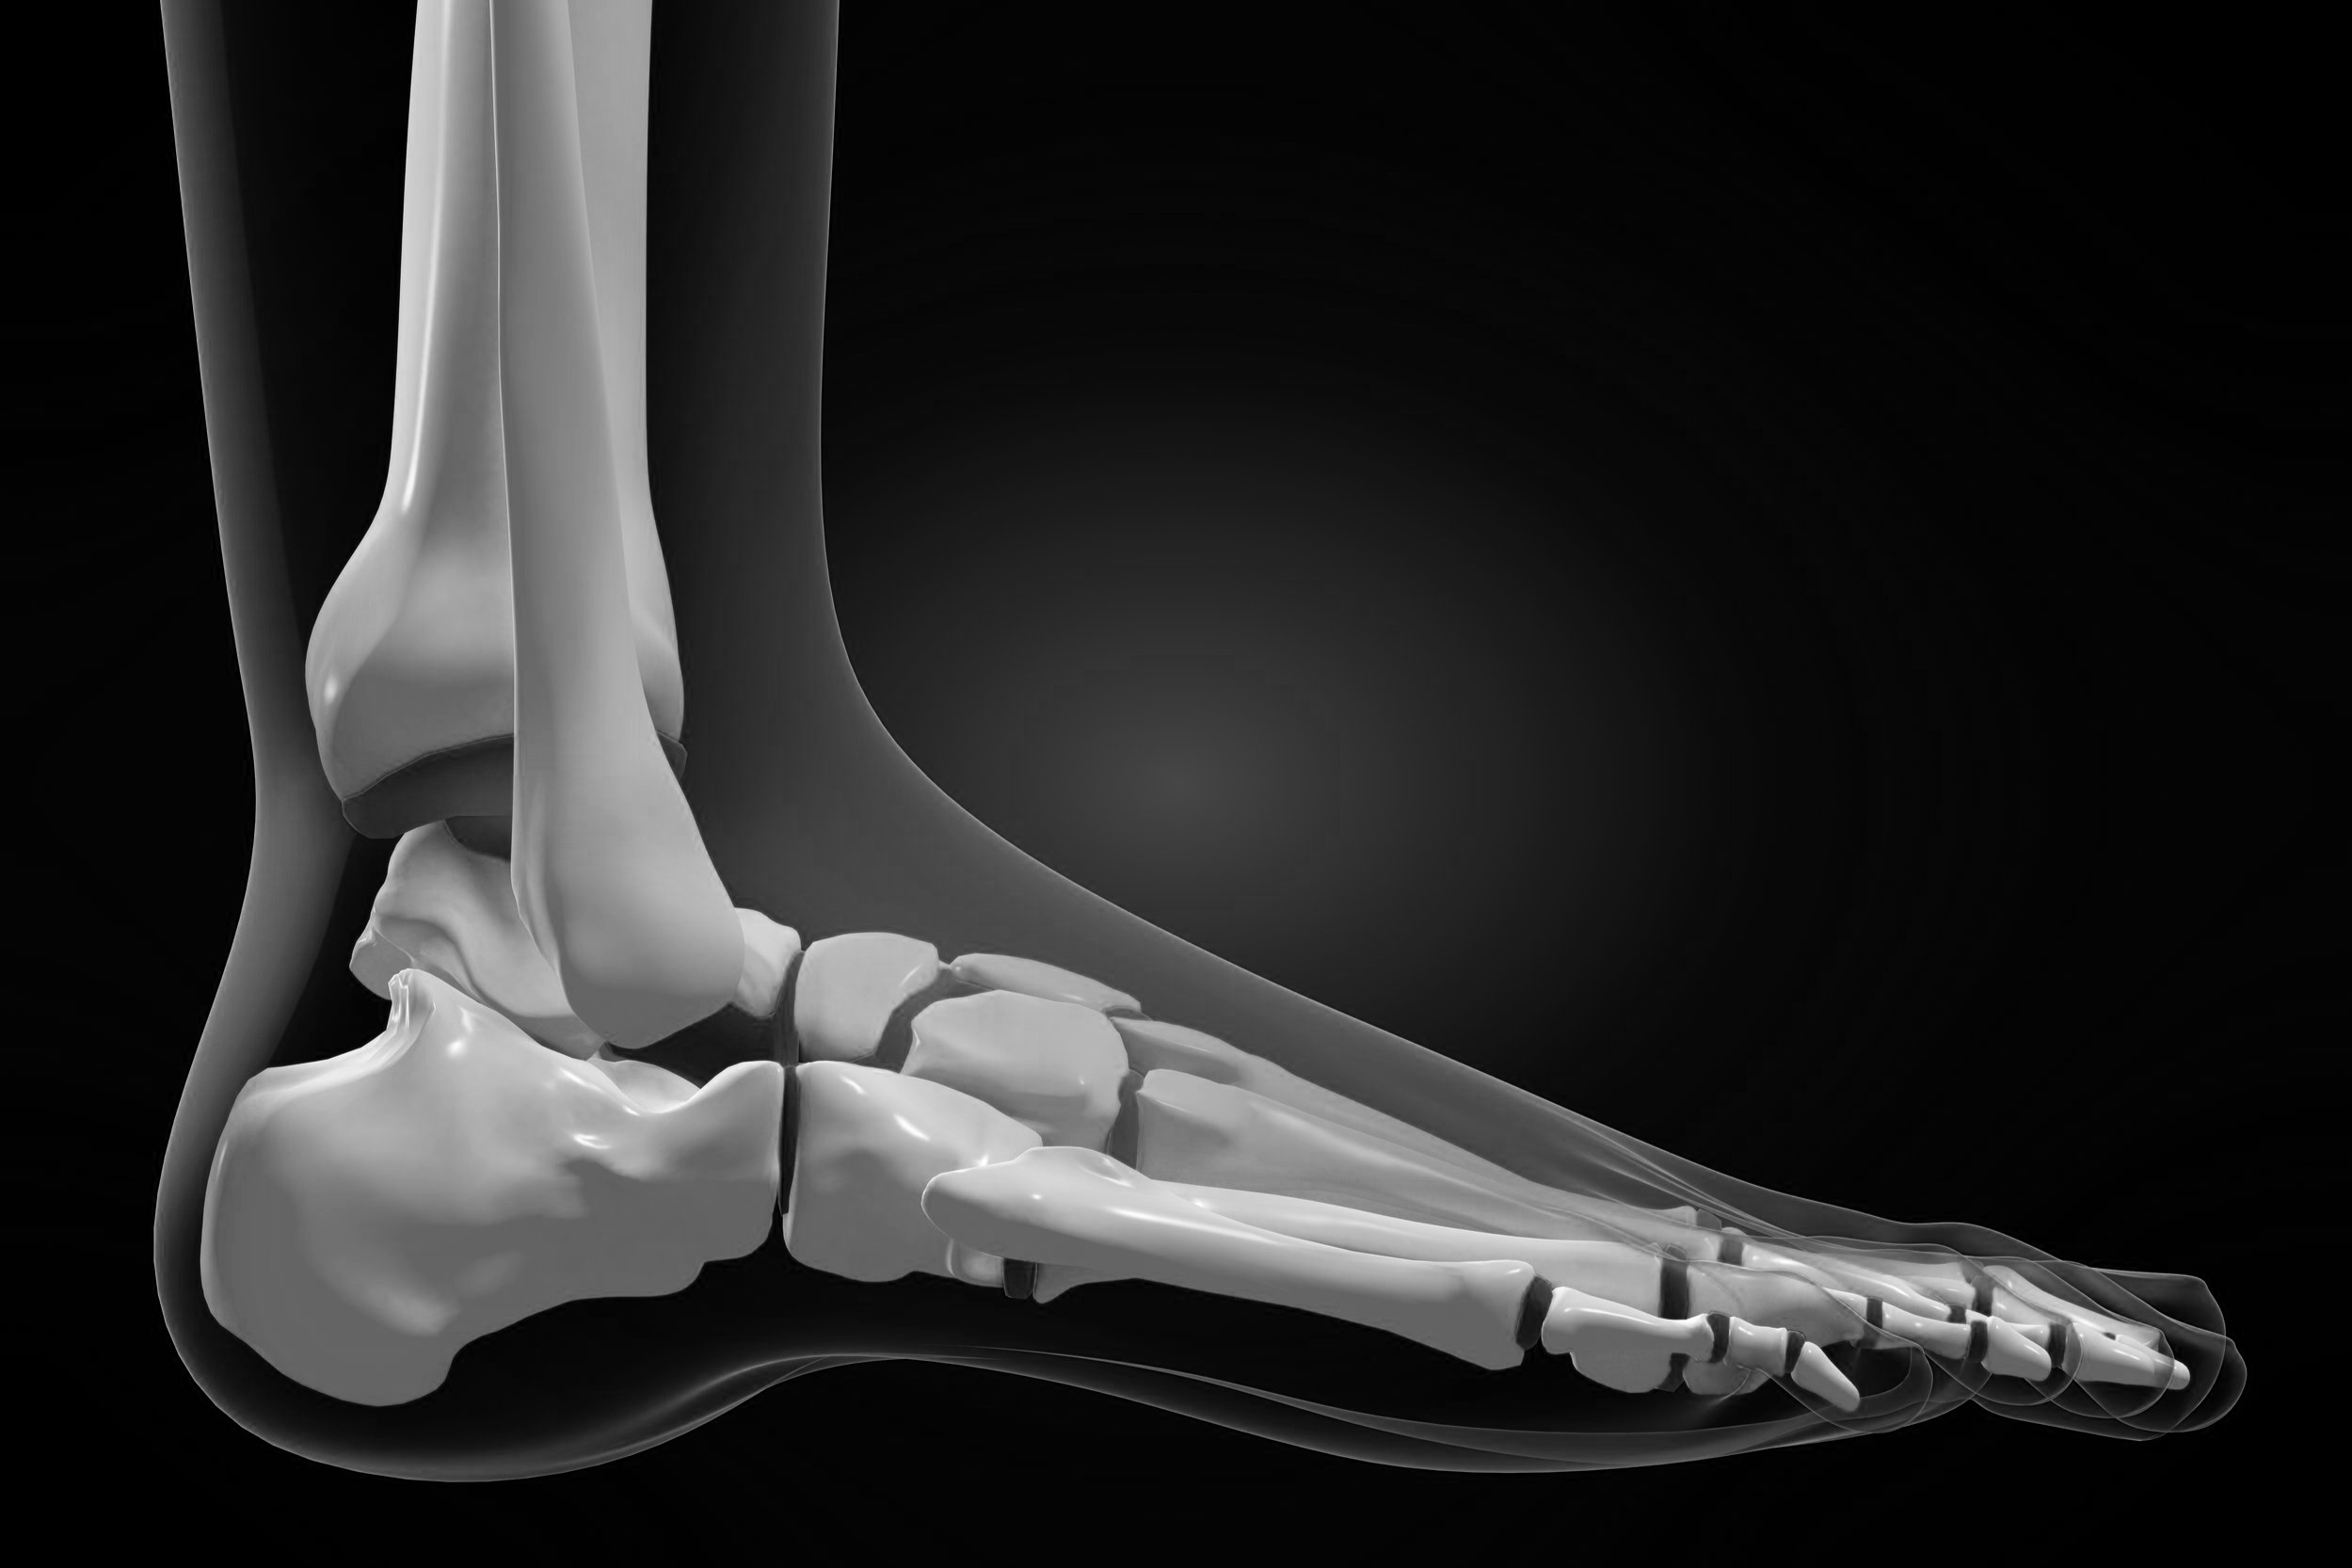 treatment for broken ankle, foot fracture, broken toe - foot doctor manalapan nj